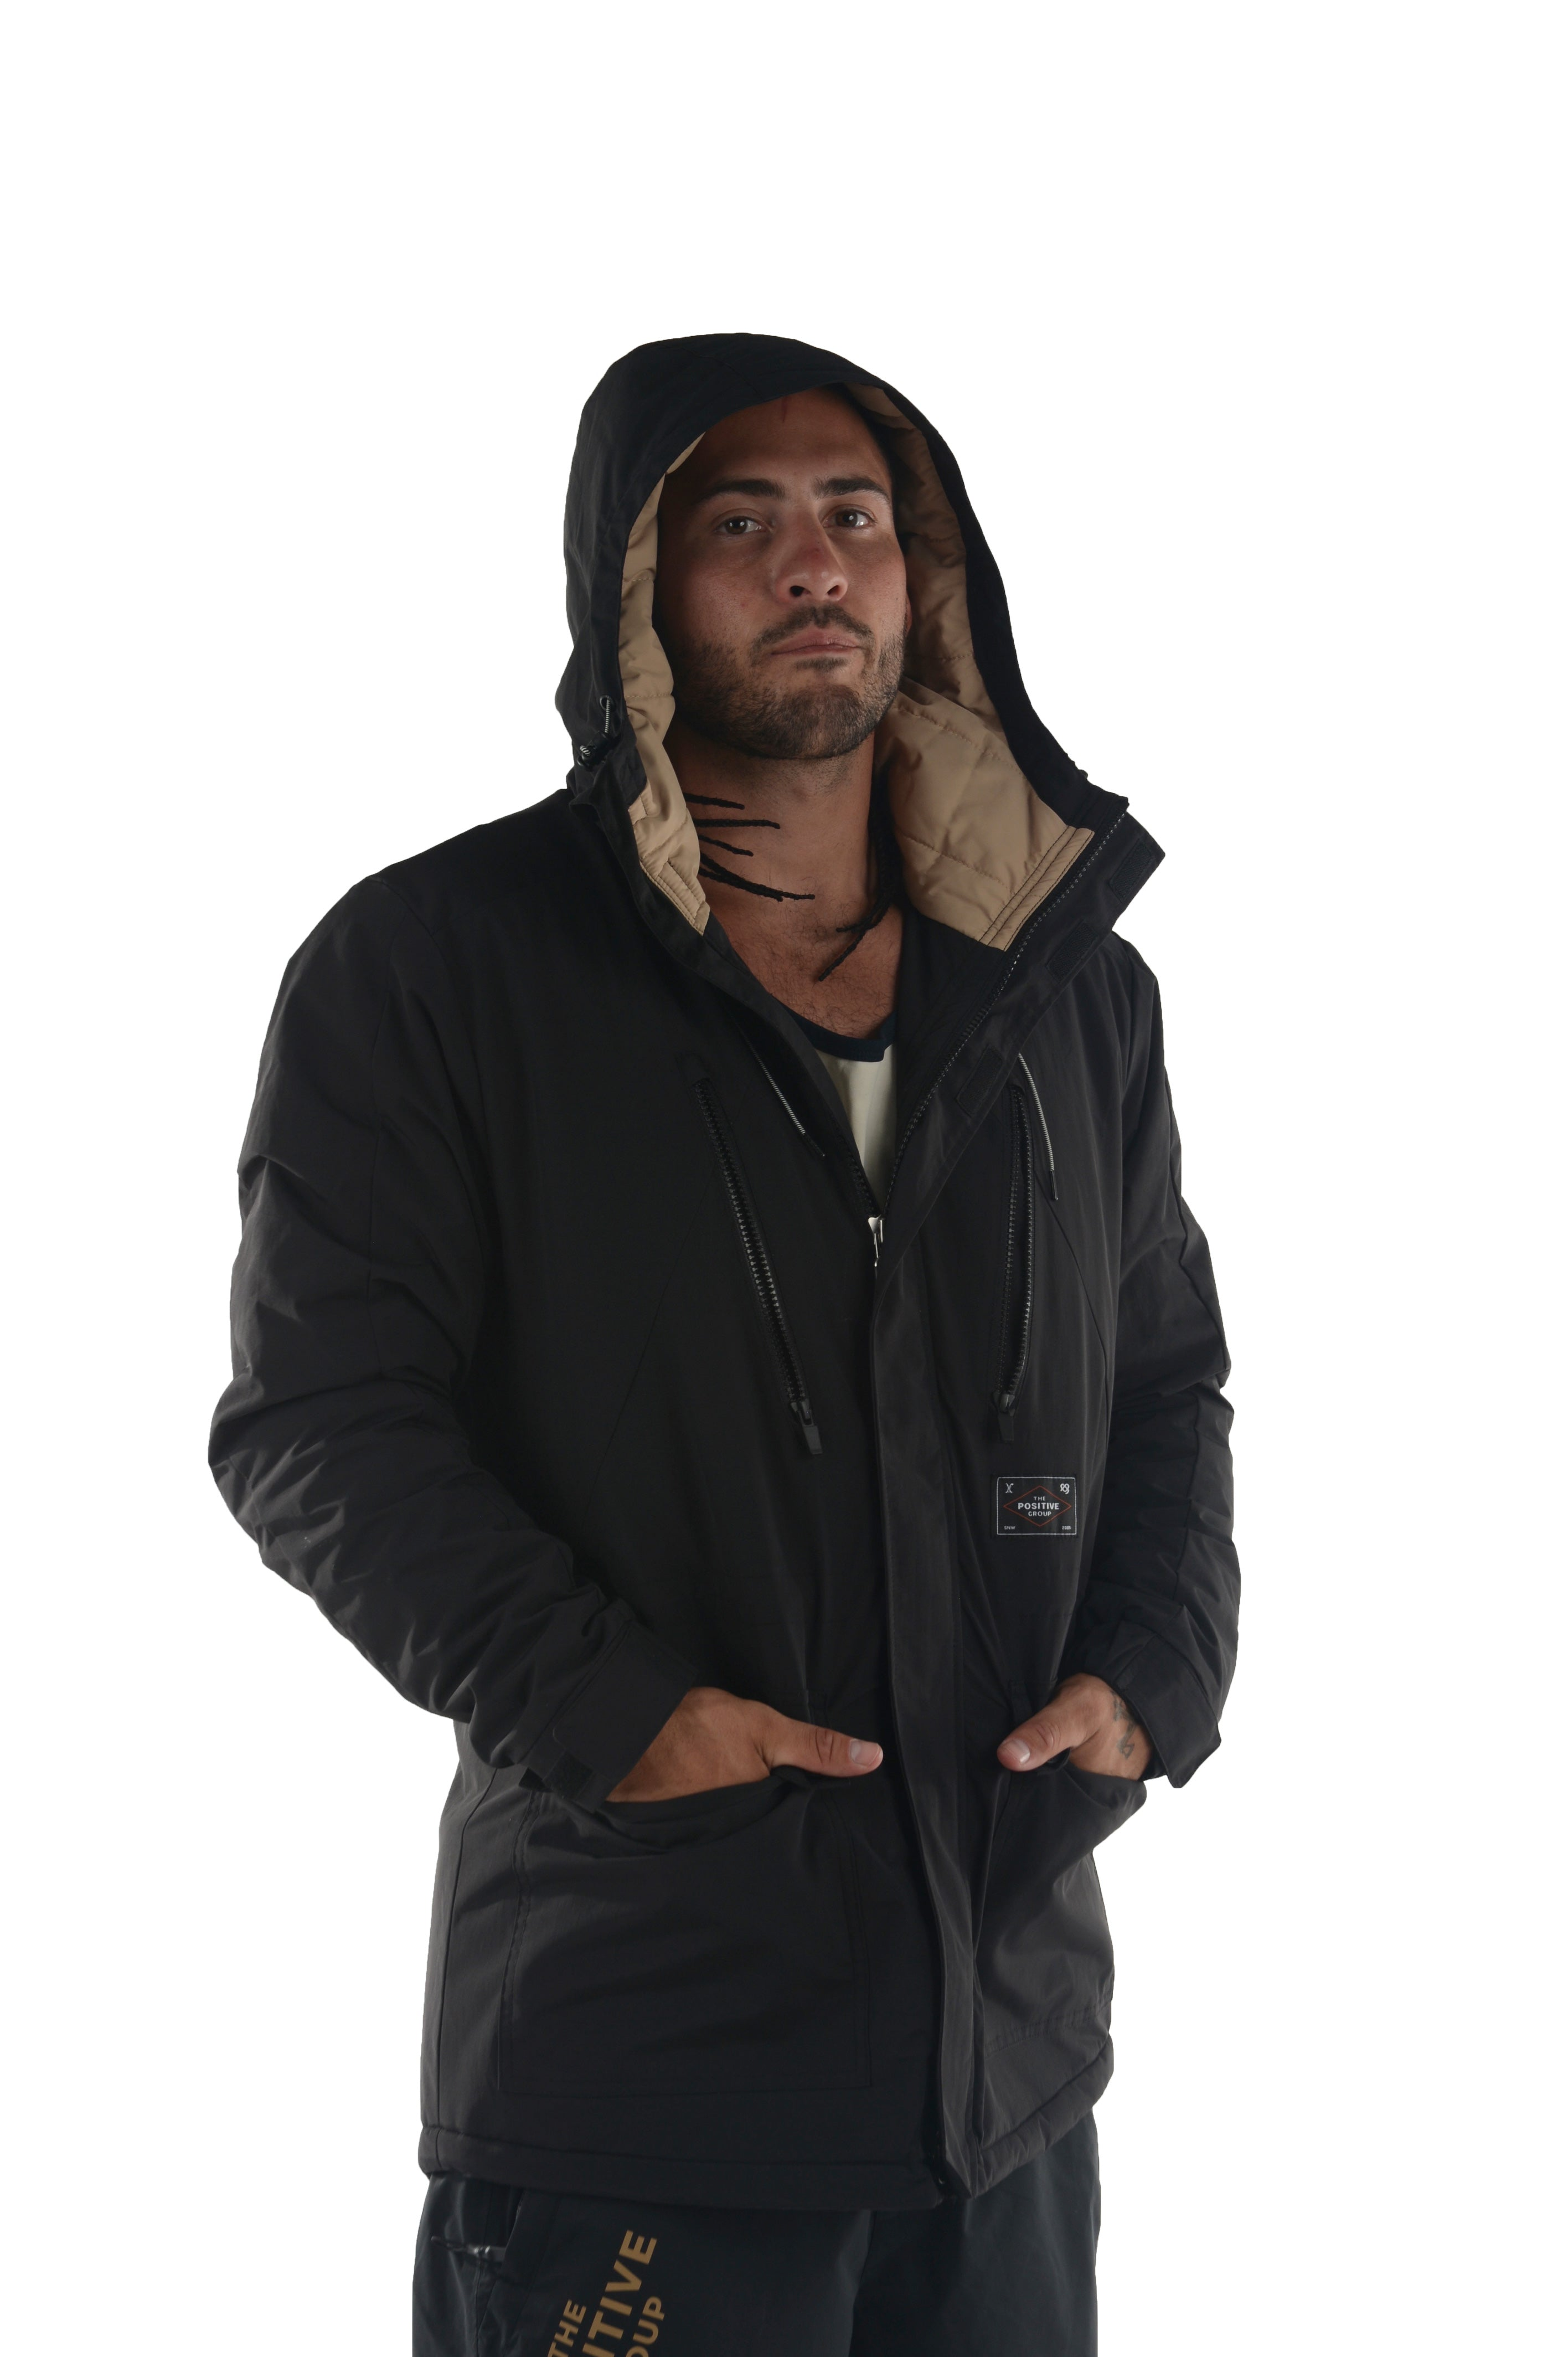 STEWART JACKET II BLACK, Positive Group, STEWART JACKET II BLACK